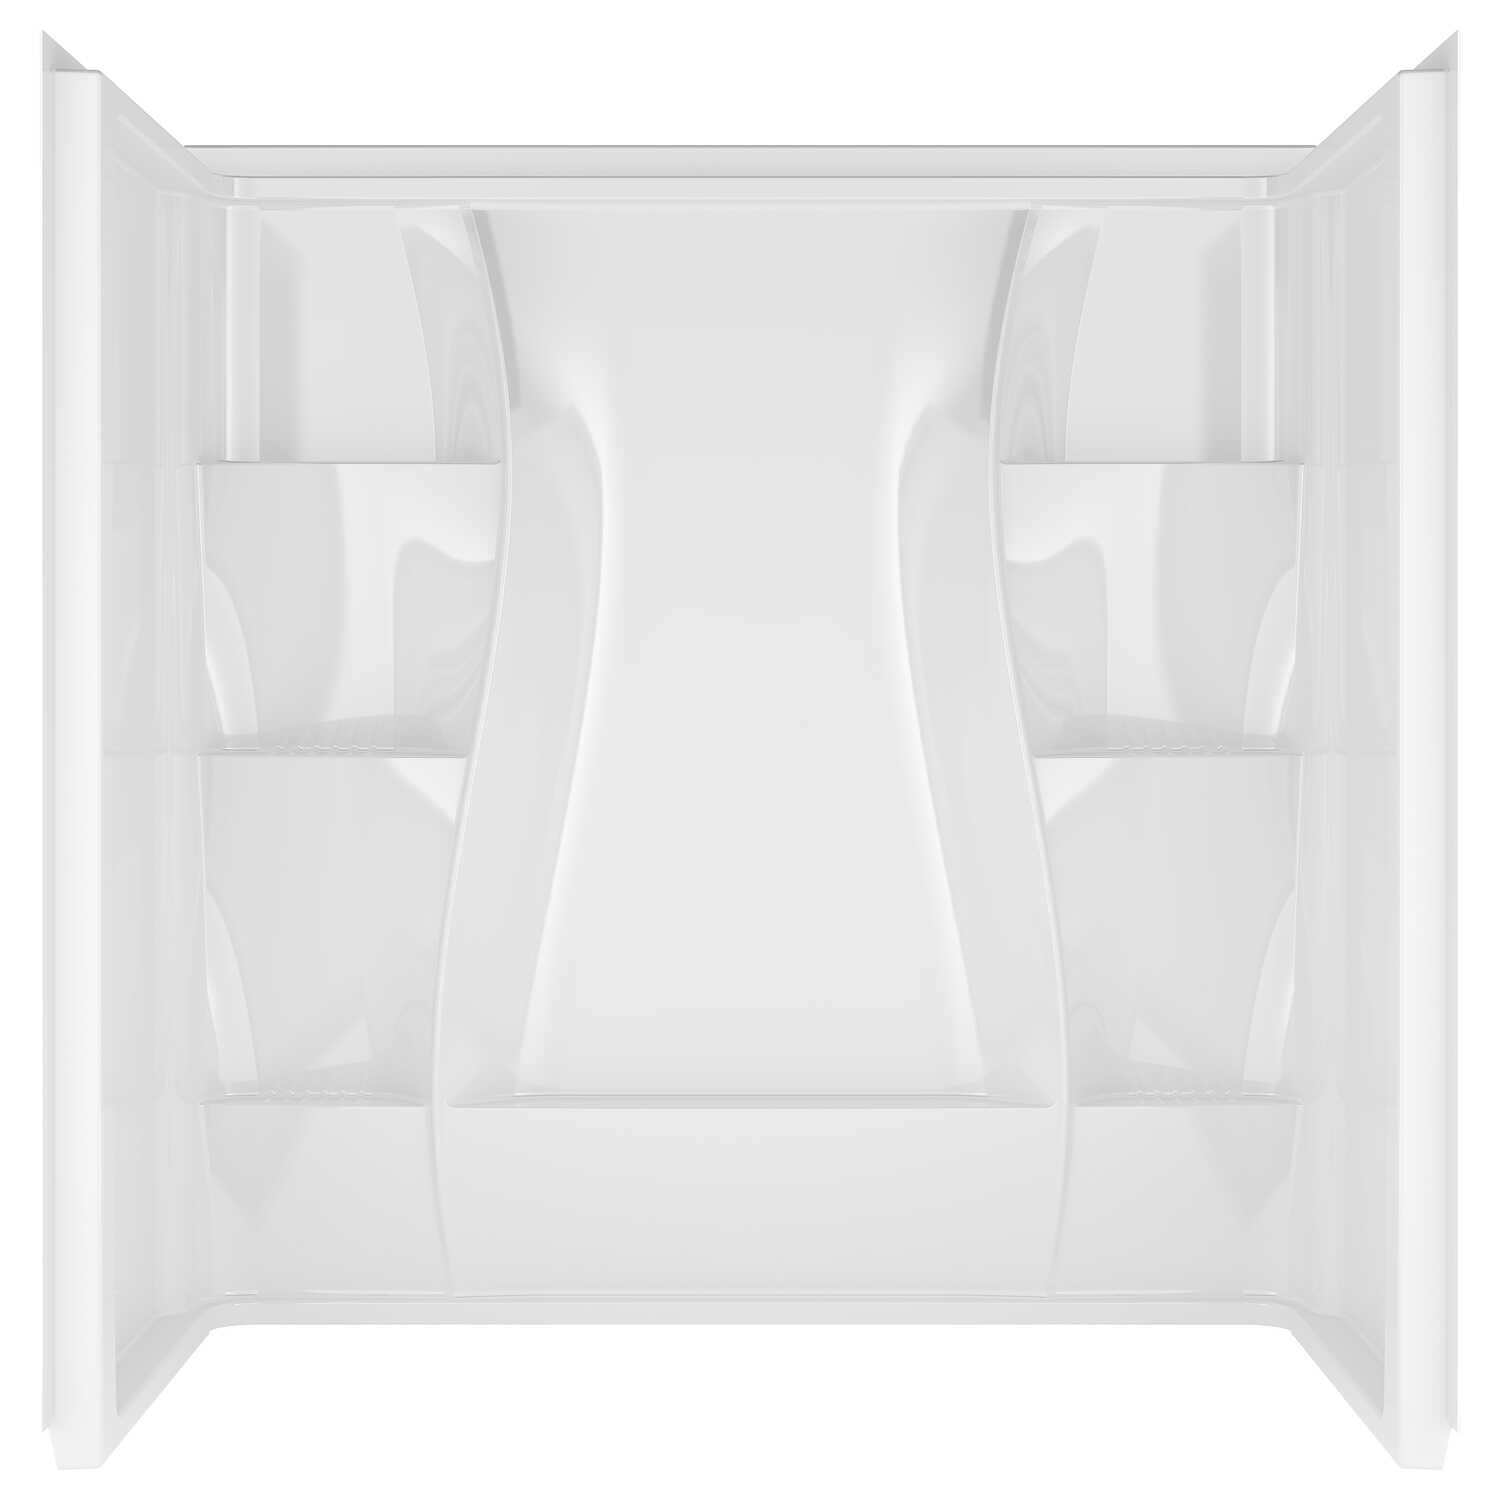 Delta Bathing System  Classic  60 in. H x 60 in. W x 32 in. L White  Rectangle  Acrylic  Bathtub Sur